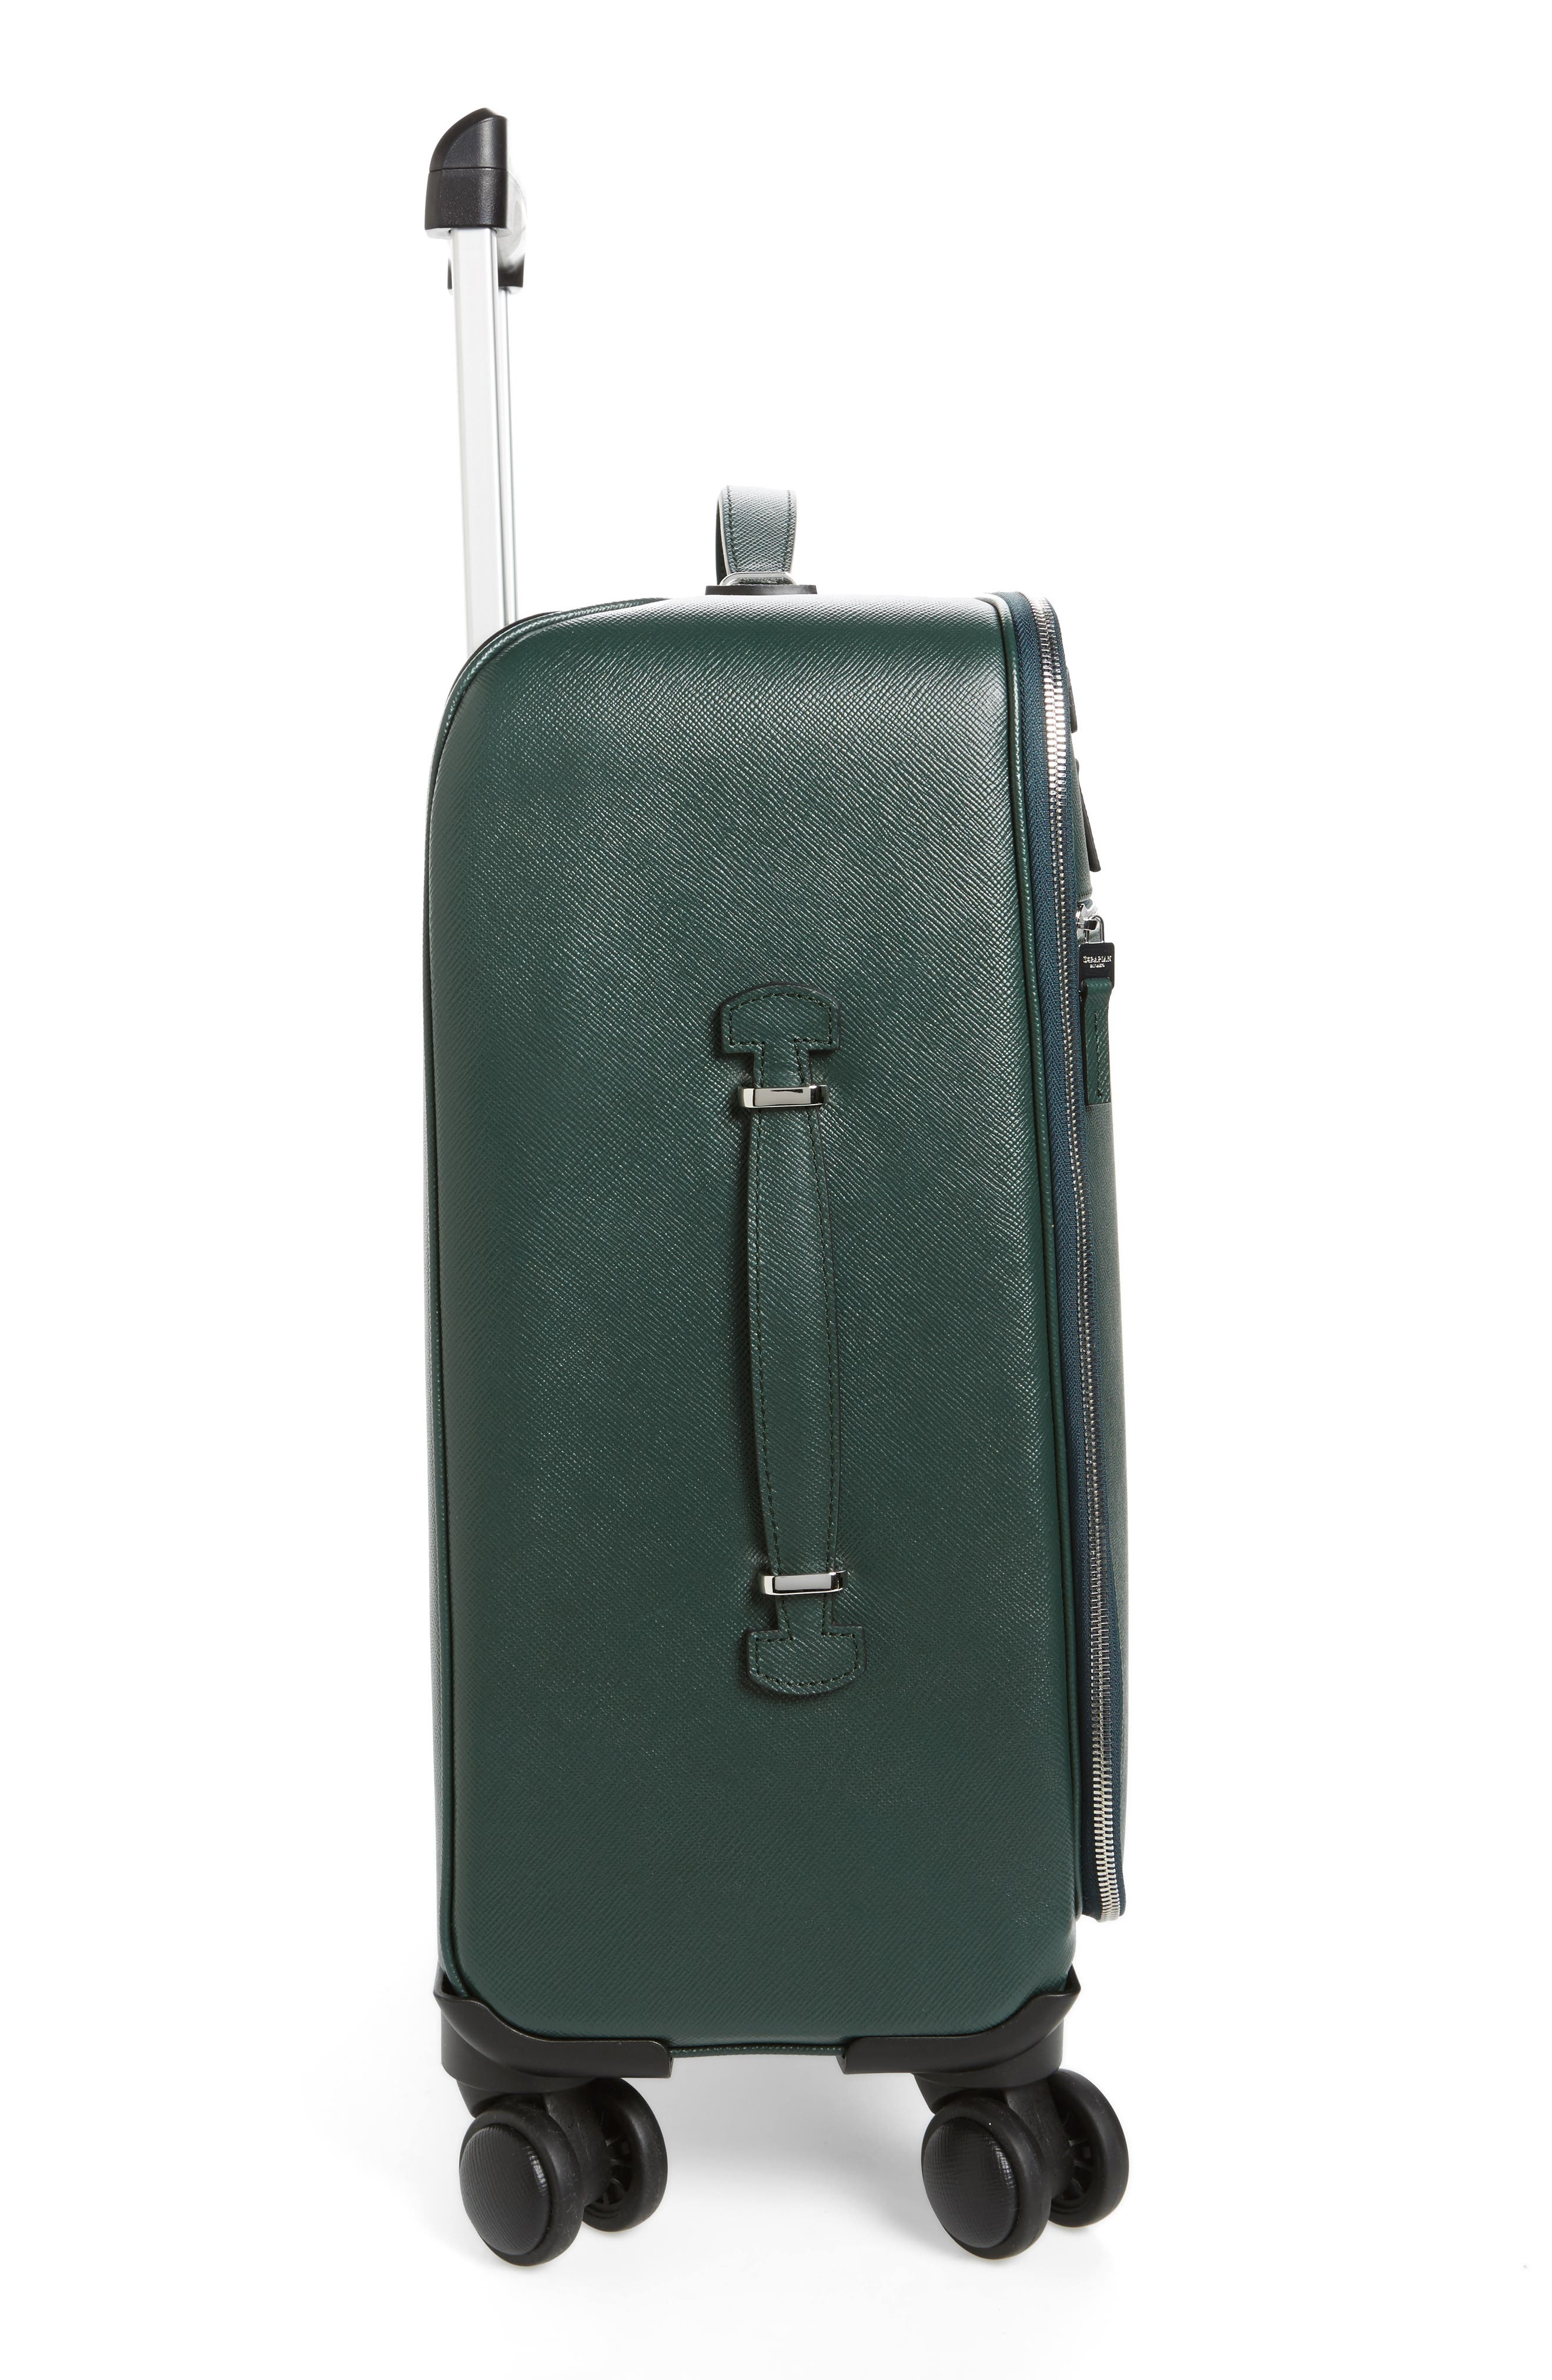 Trolley Spinner Wheeled Carry-On Suitcase,                             Alternate thumbnail 12, color,